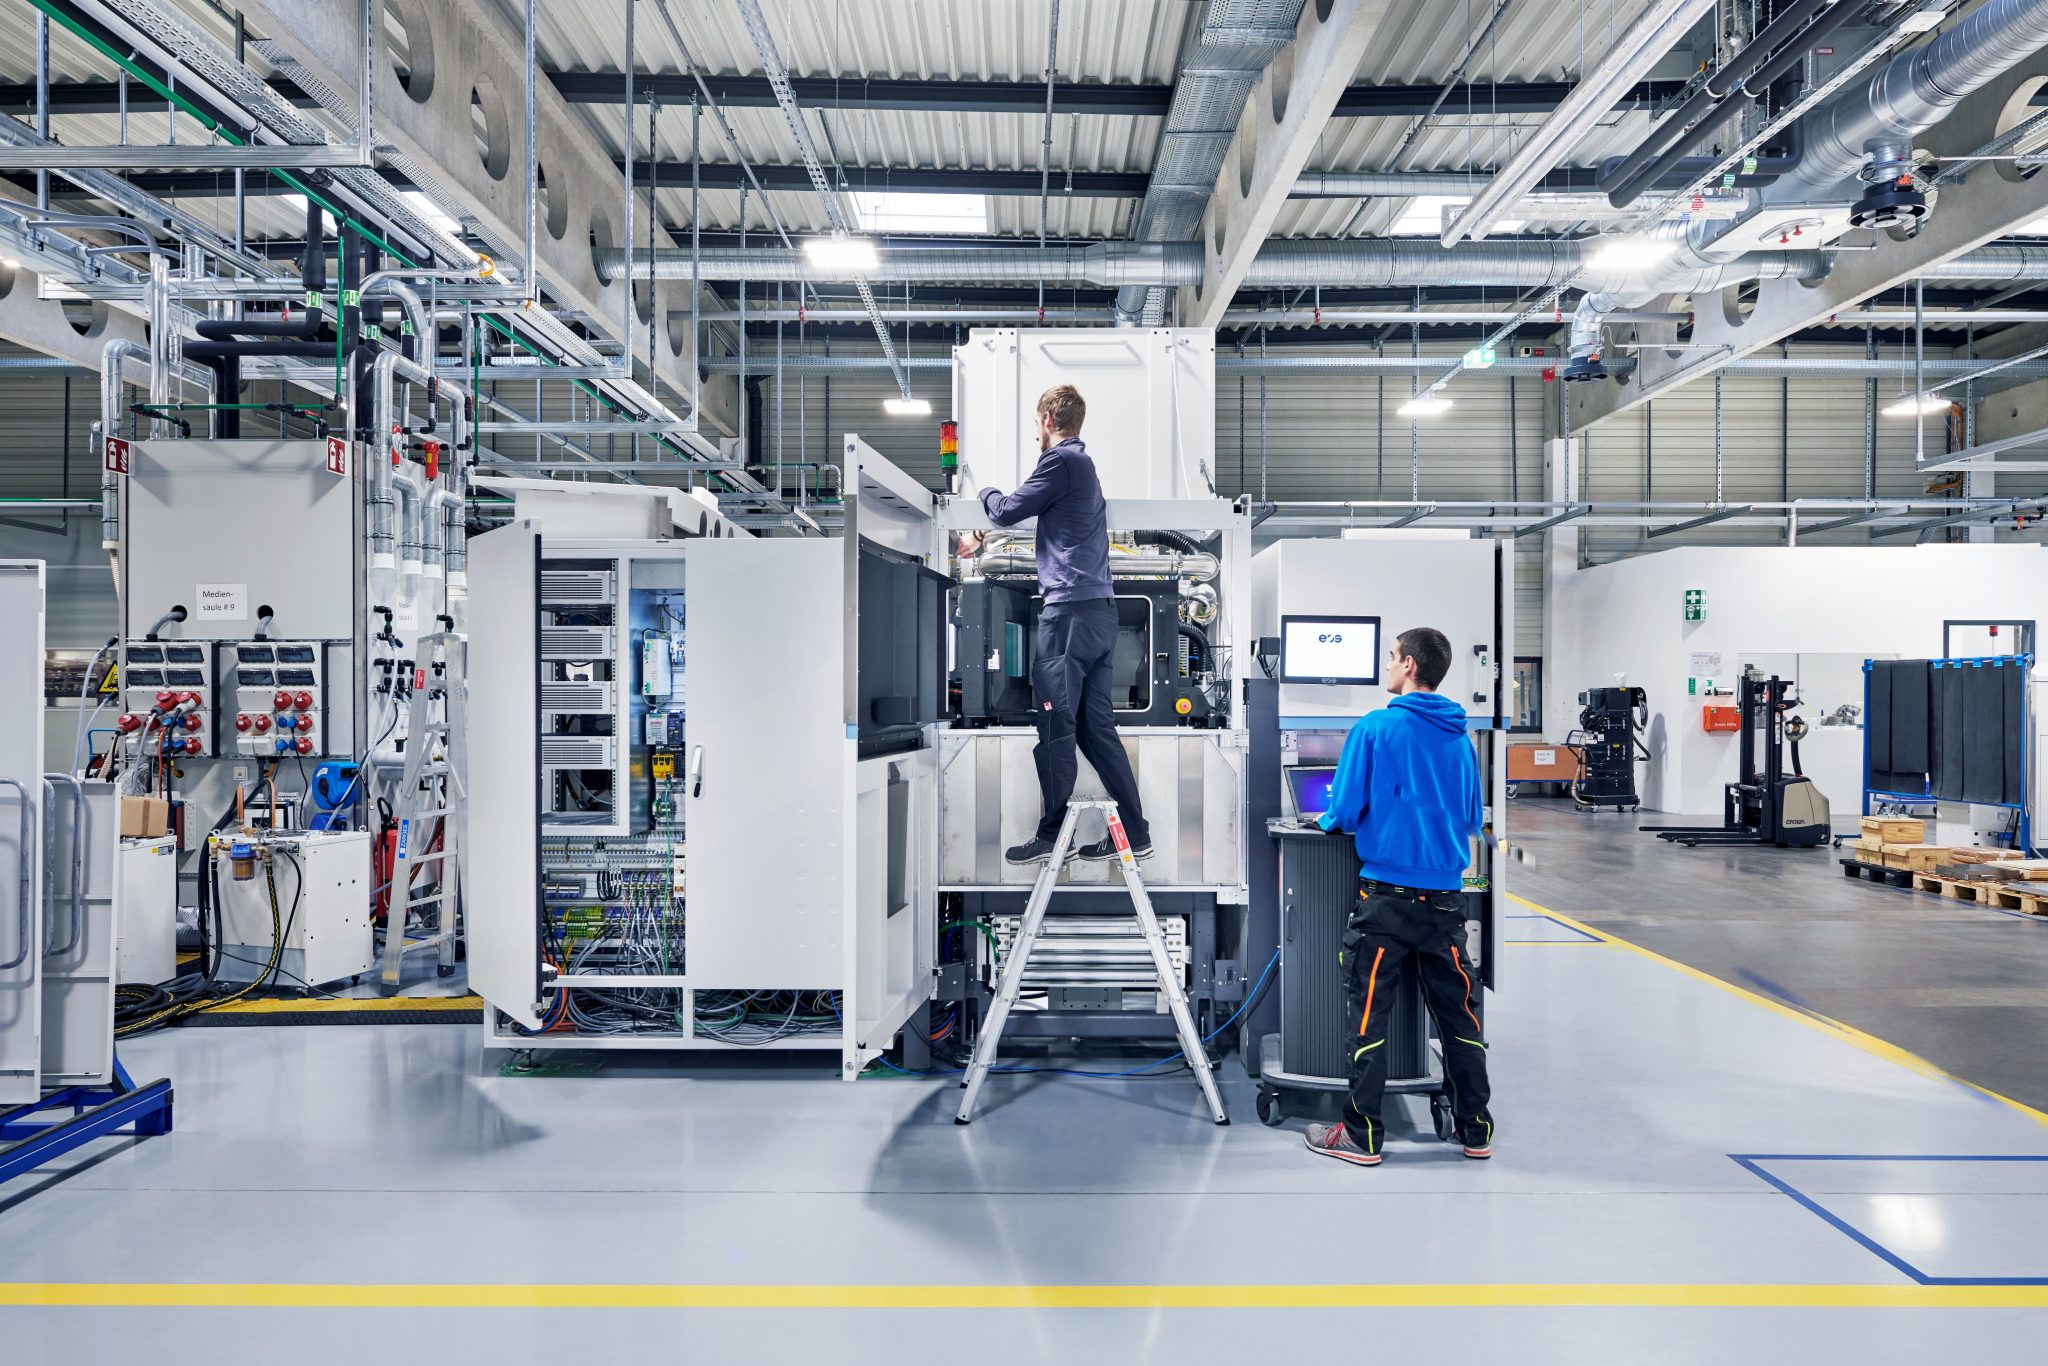 Eos Meets Surge In Demand For 3d Printers With New 9000 Square Meter